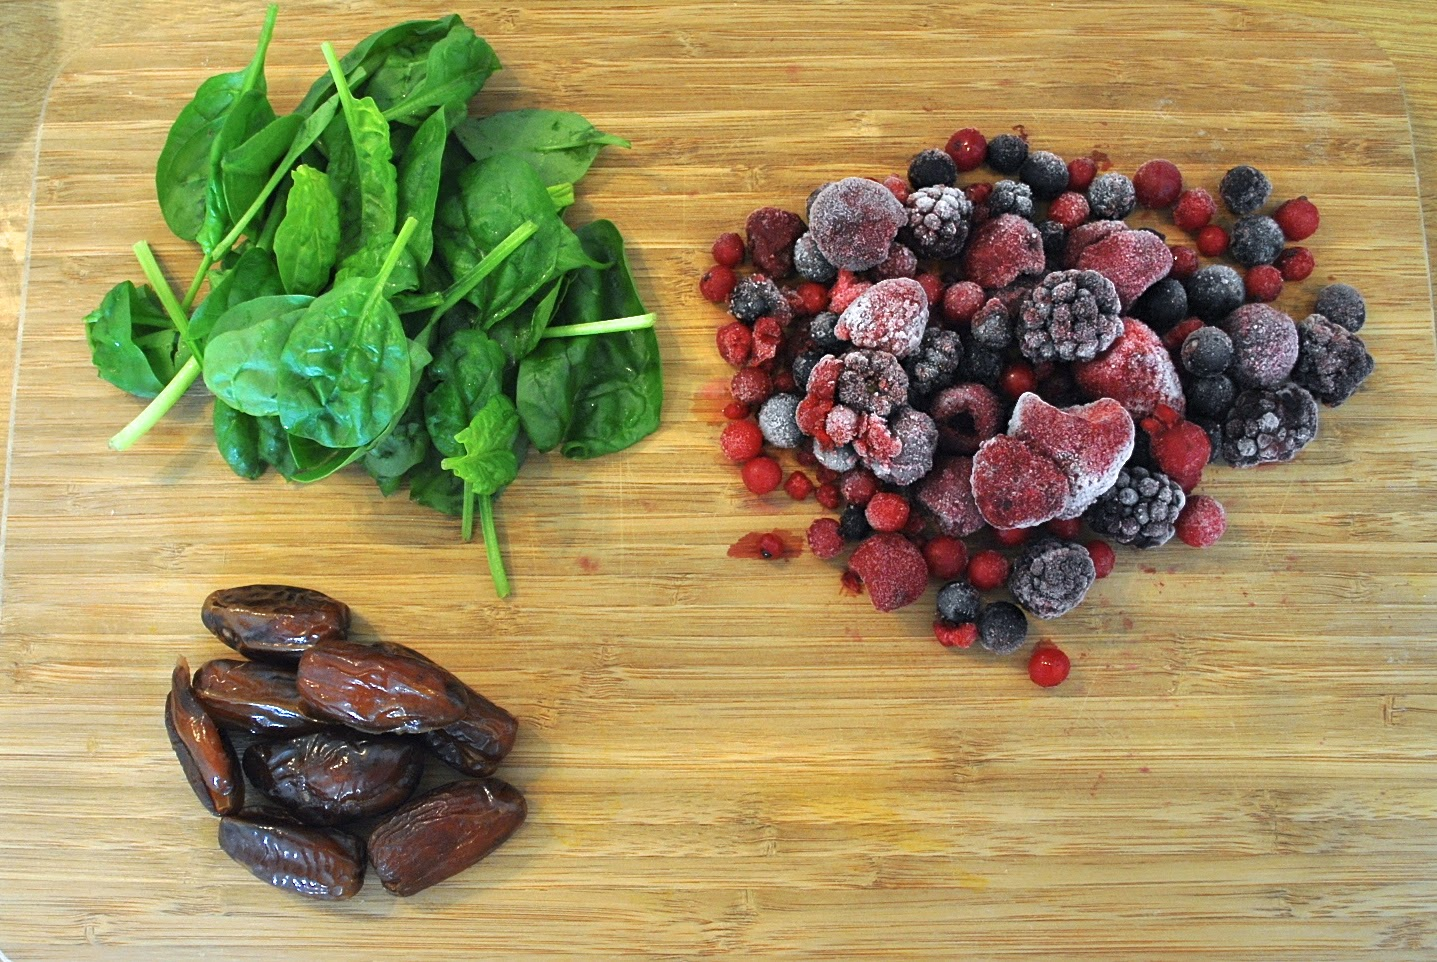 Spinach, berries and dates